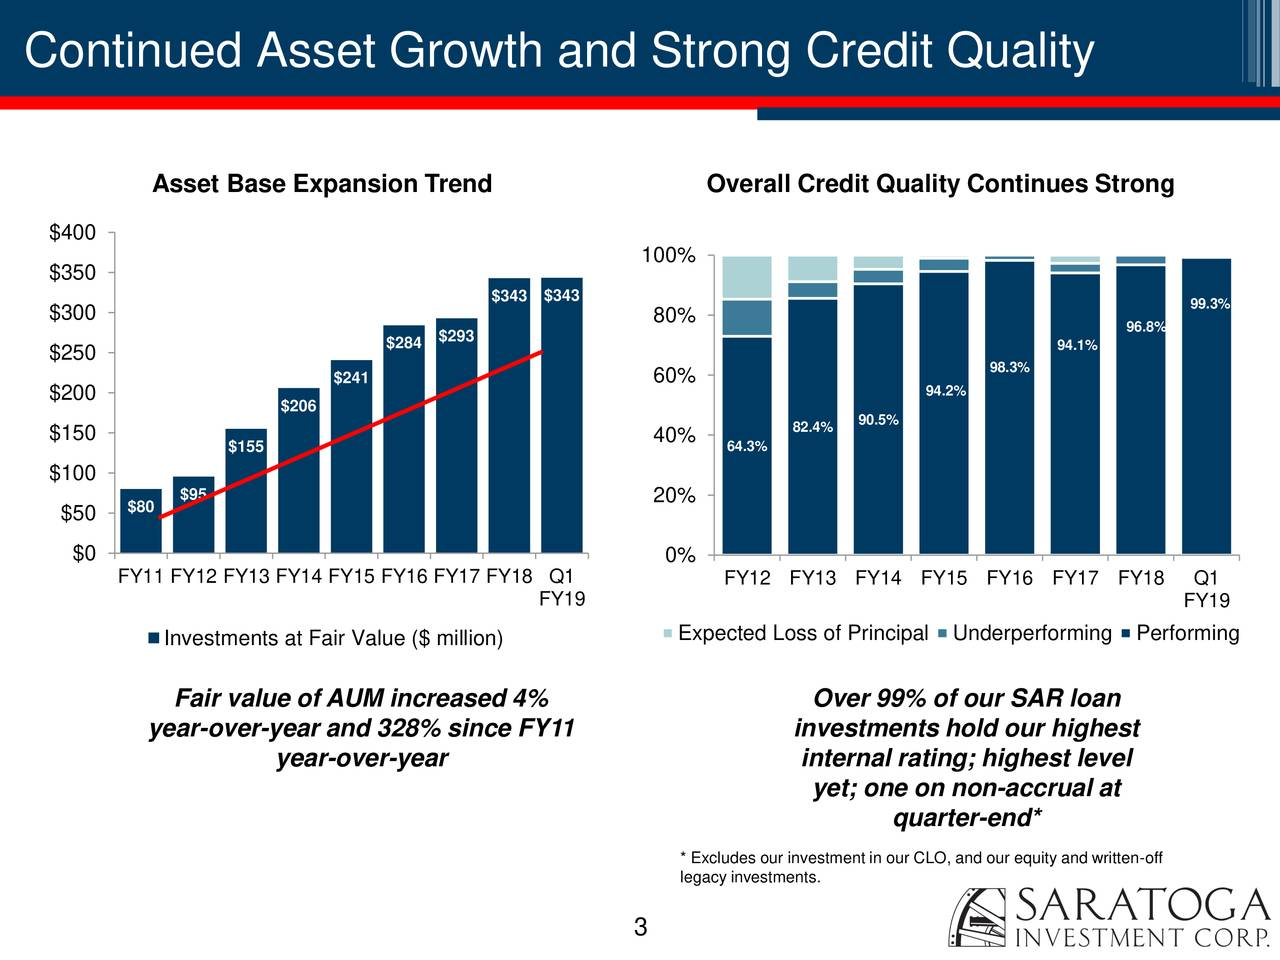 Asset Base Expansion Trend Overall Credit Quality Continues Strong $400 100% $350 $343 $343 99.3% $300 80% 96.8% $284 $293 94.1% $250 98.3% $241 60% 94.2% $200 $206 82.4% 90.5% $150 $155 40% 64.3% $100 $95 $50 $80 20% $0 0% FY11 FY12 FY13 FY14 FY15 FY16 FY17 FY18 Q1 FY12 FY13 FY14 FY15 FY16 FY17 FY18 Q1 FY19 FY19 Expected Loss of PrincipalUnderperforming Performing Investments at Fair Value ($ million) Fair value of AUM increased 4% Over 99% of our SAR loan year-over-year and 328% since FY11 investments hold our highest year-over-year internal rating; highest level yet; one on non-accrual at quarter-end* * Excludes our investment in our CLO, and our equity and written-off legacy investments. 3